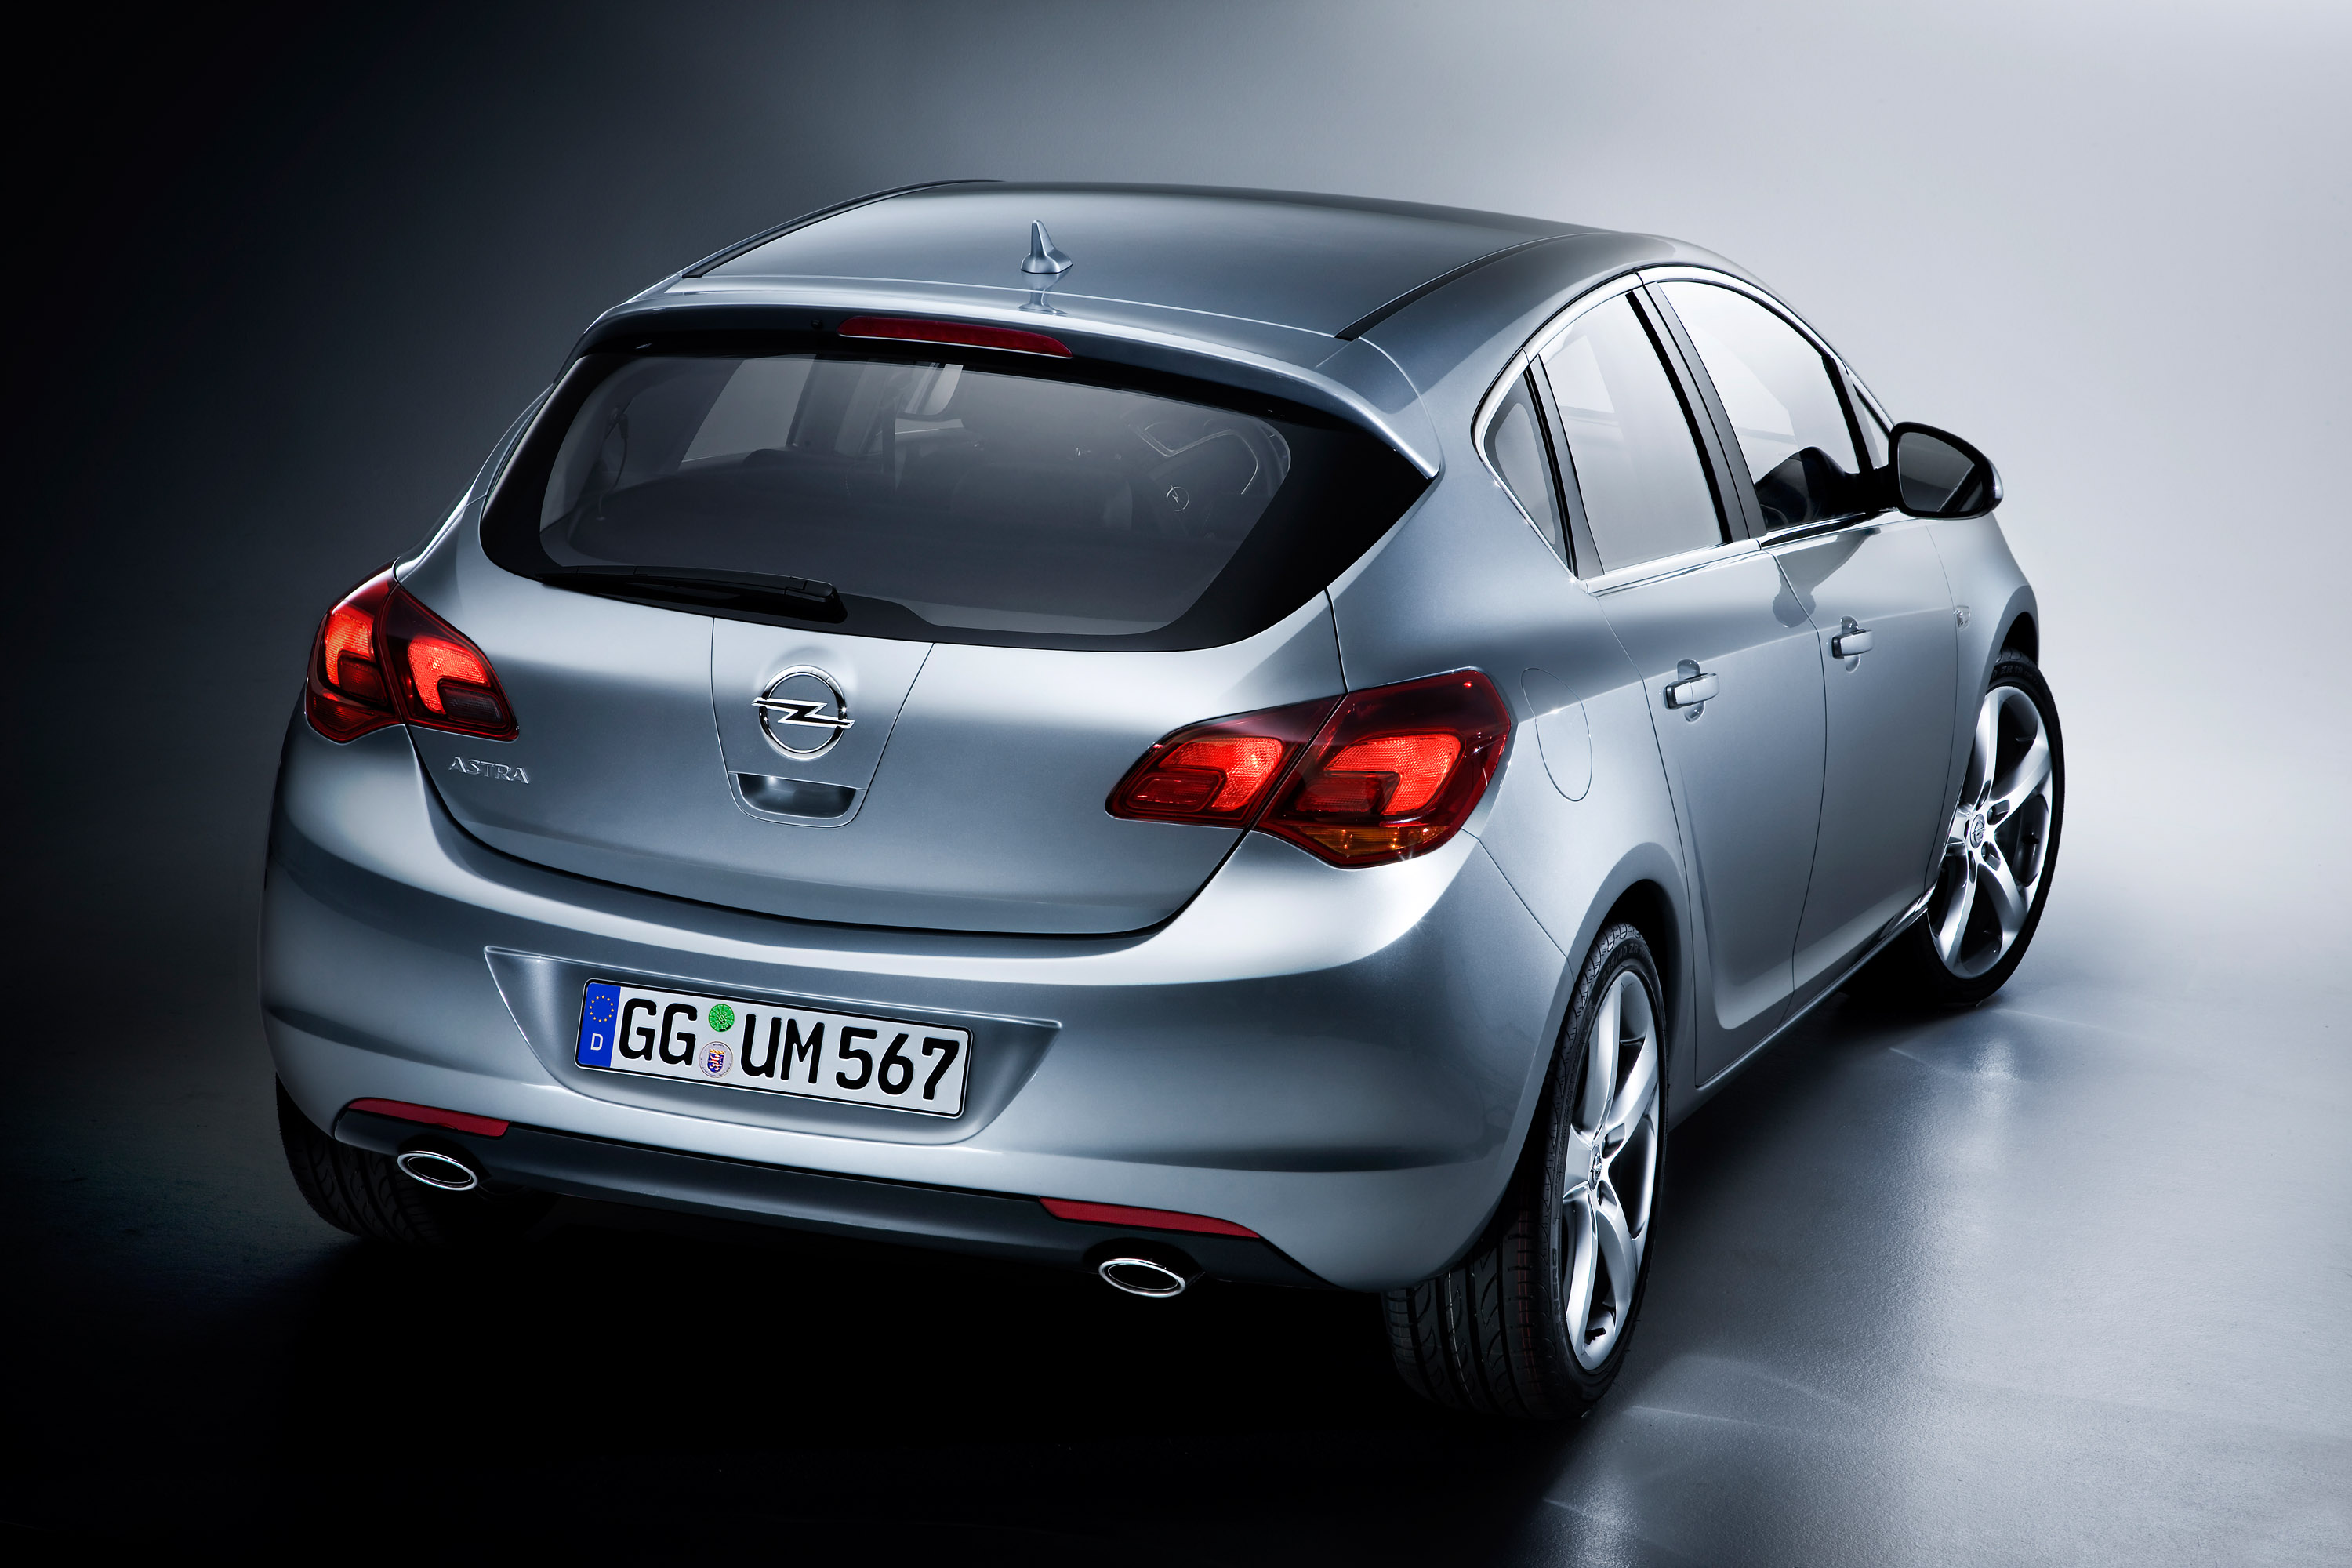 3dtuning of opel astra wagon 2012 unique on line car configurator for more than. Black Bedroom Furniture Sets. Home Design Ideas